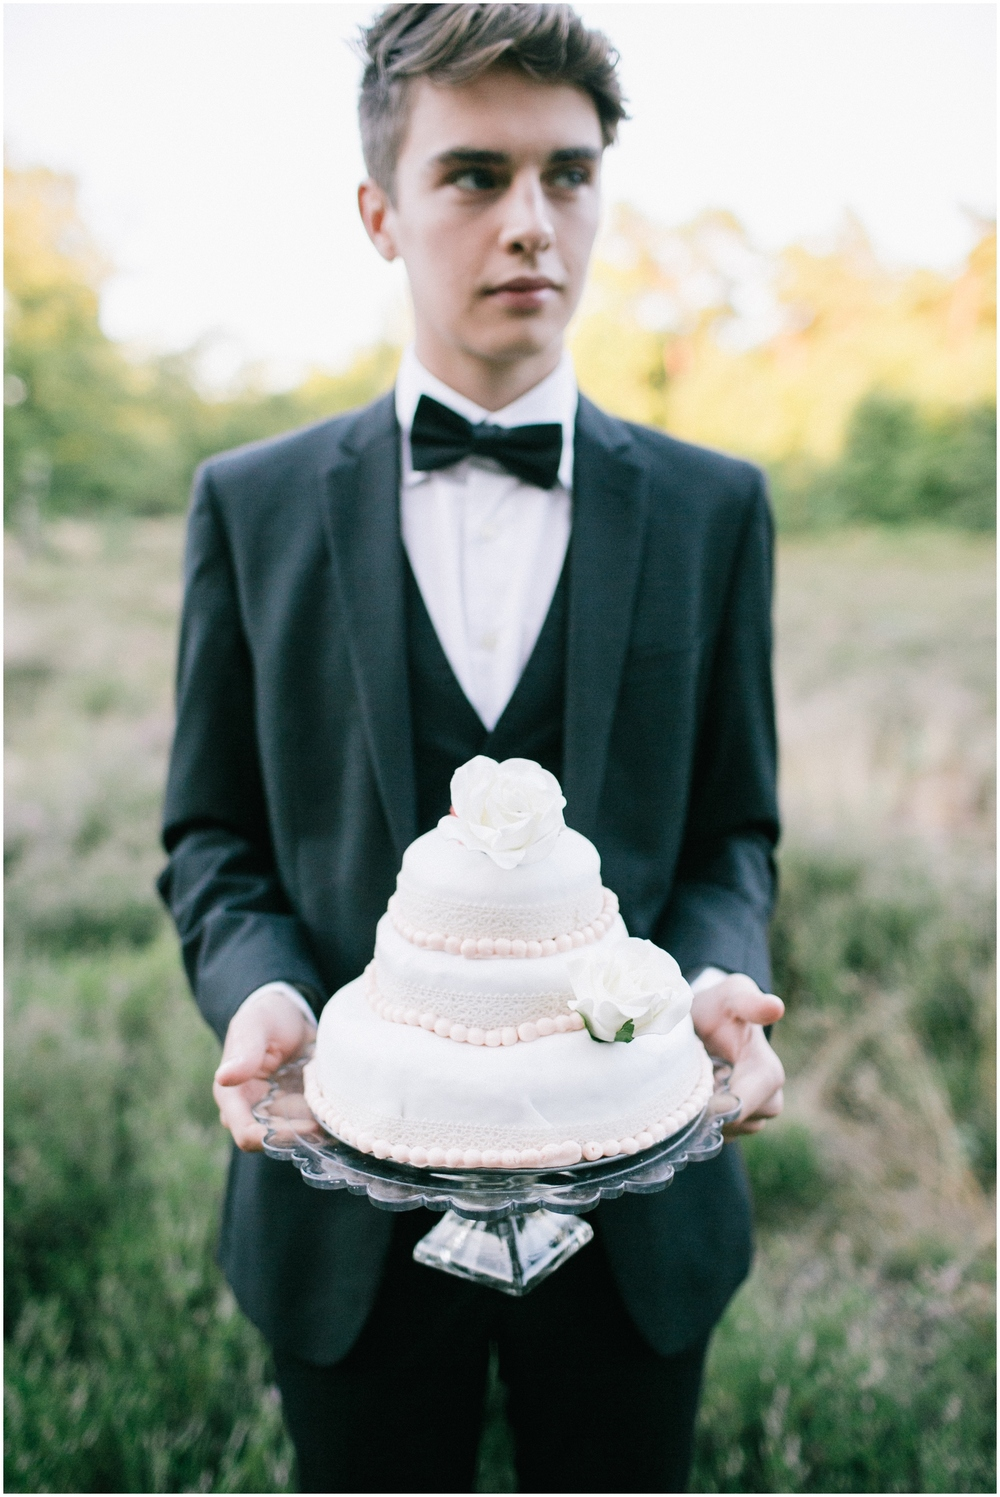 Groom with cake